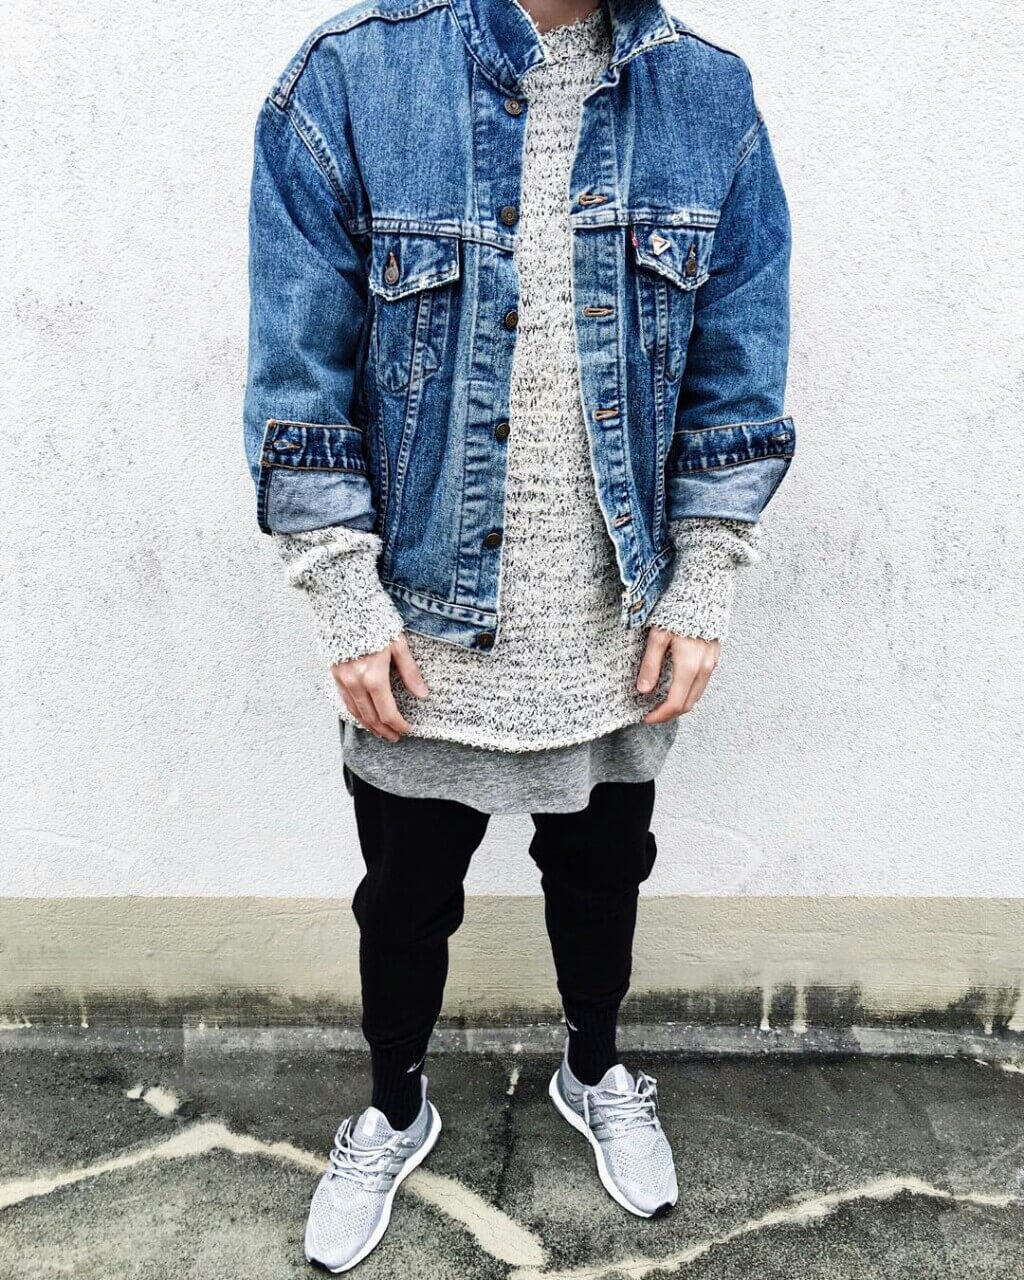 ae148f73c7 tumblr o0ykniCLNU1uceufyo1 1280. A warm and cozy streetwear inspired outfit  with a denim ...